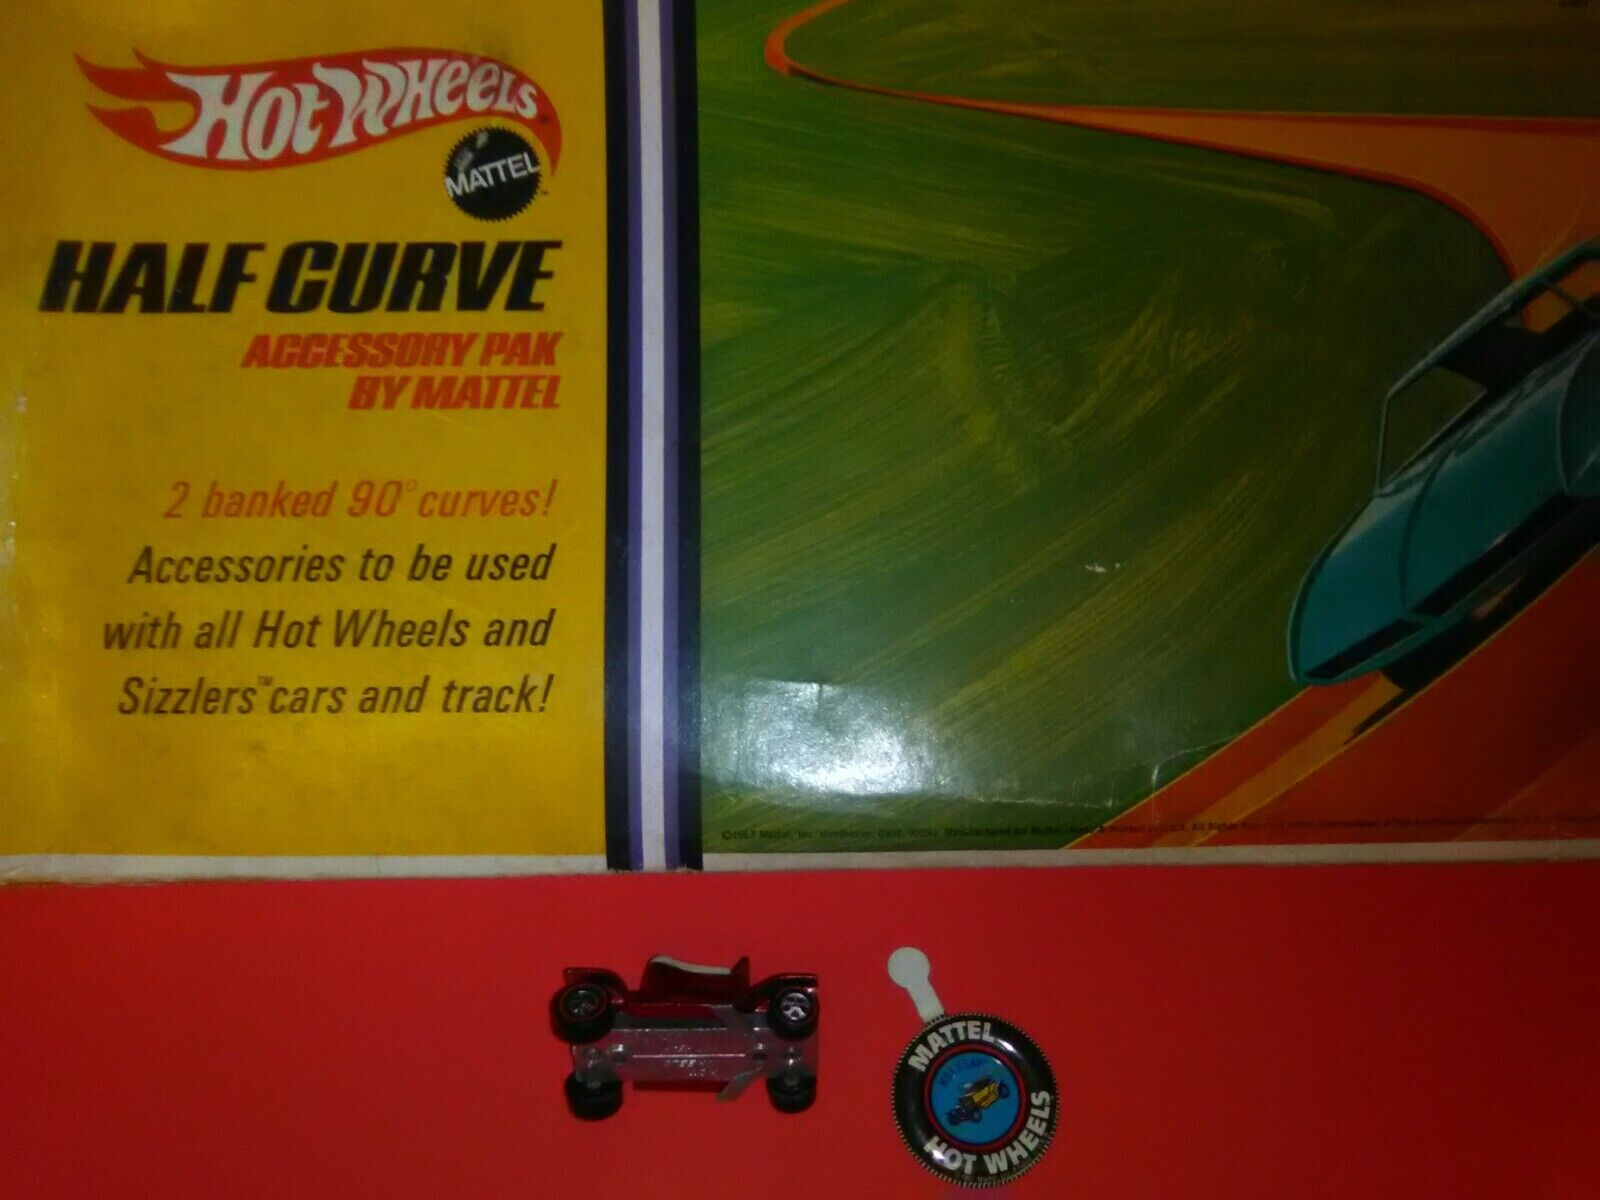 1968 HOT WHEELS rotLINE HOT HEAP rot C9+ USA w Button, box Half Curve MISB